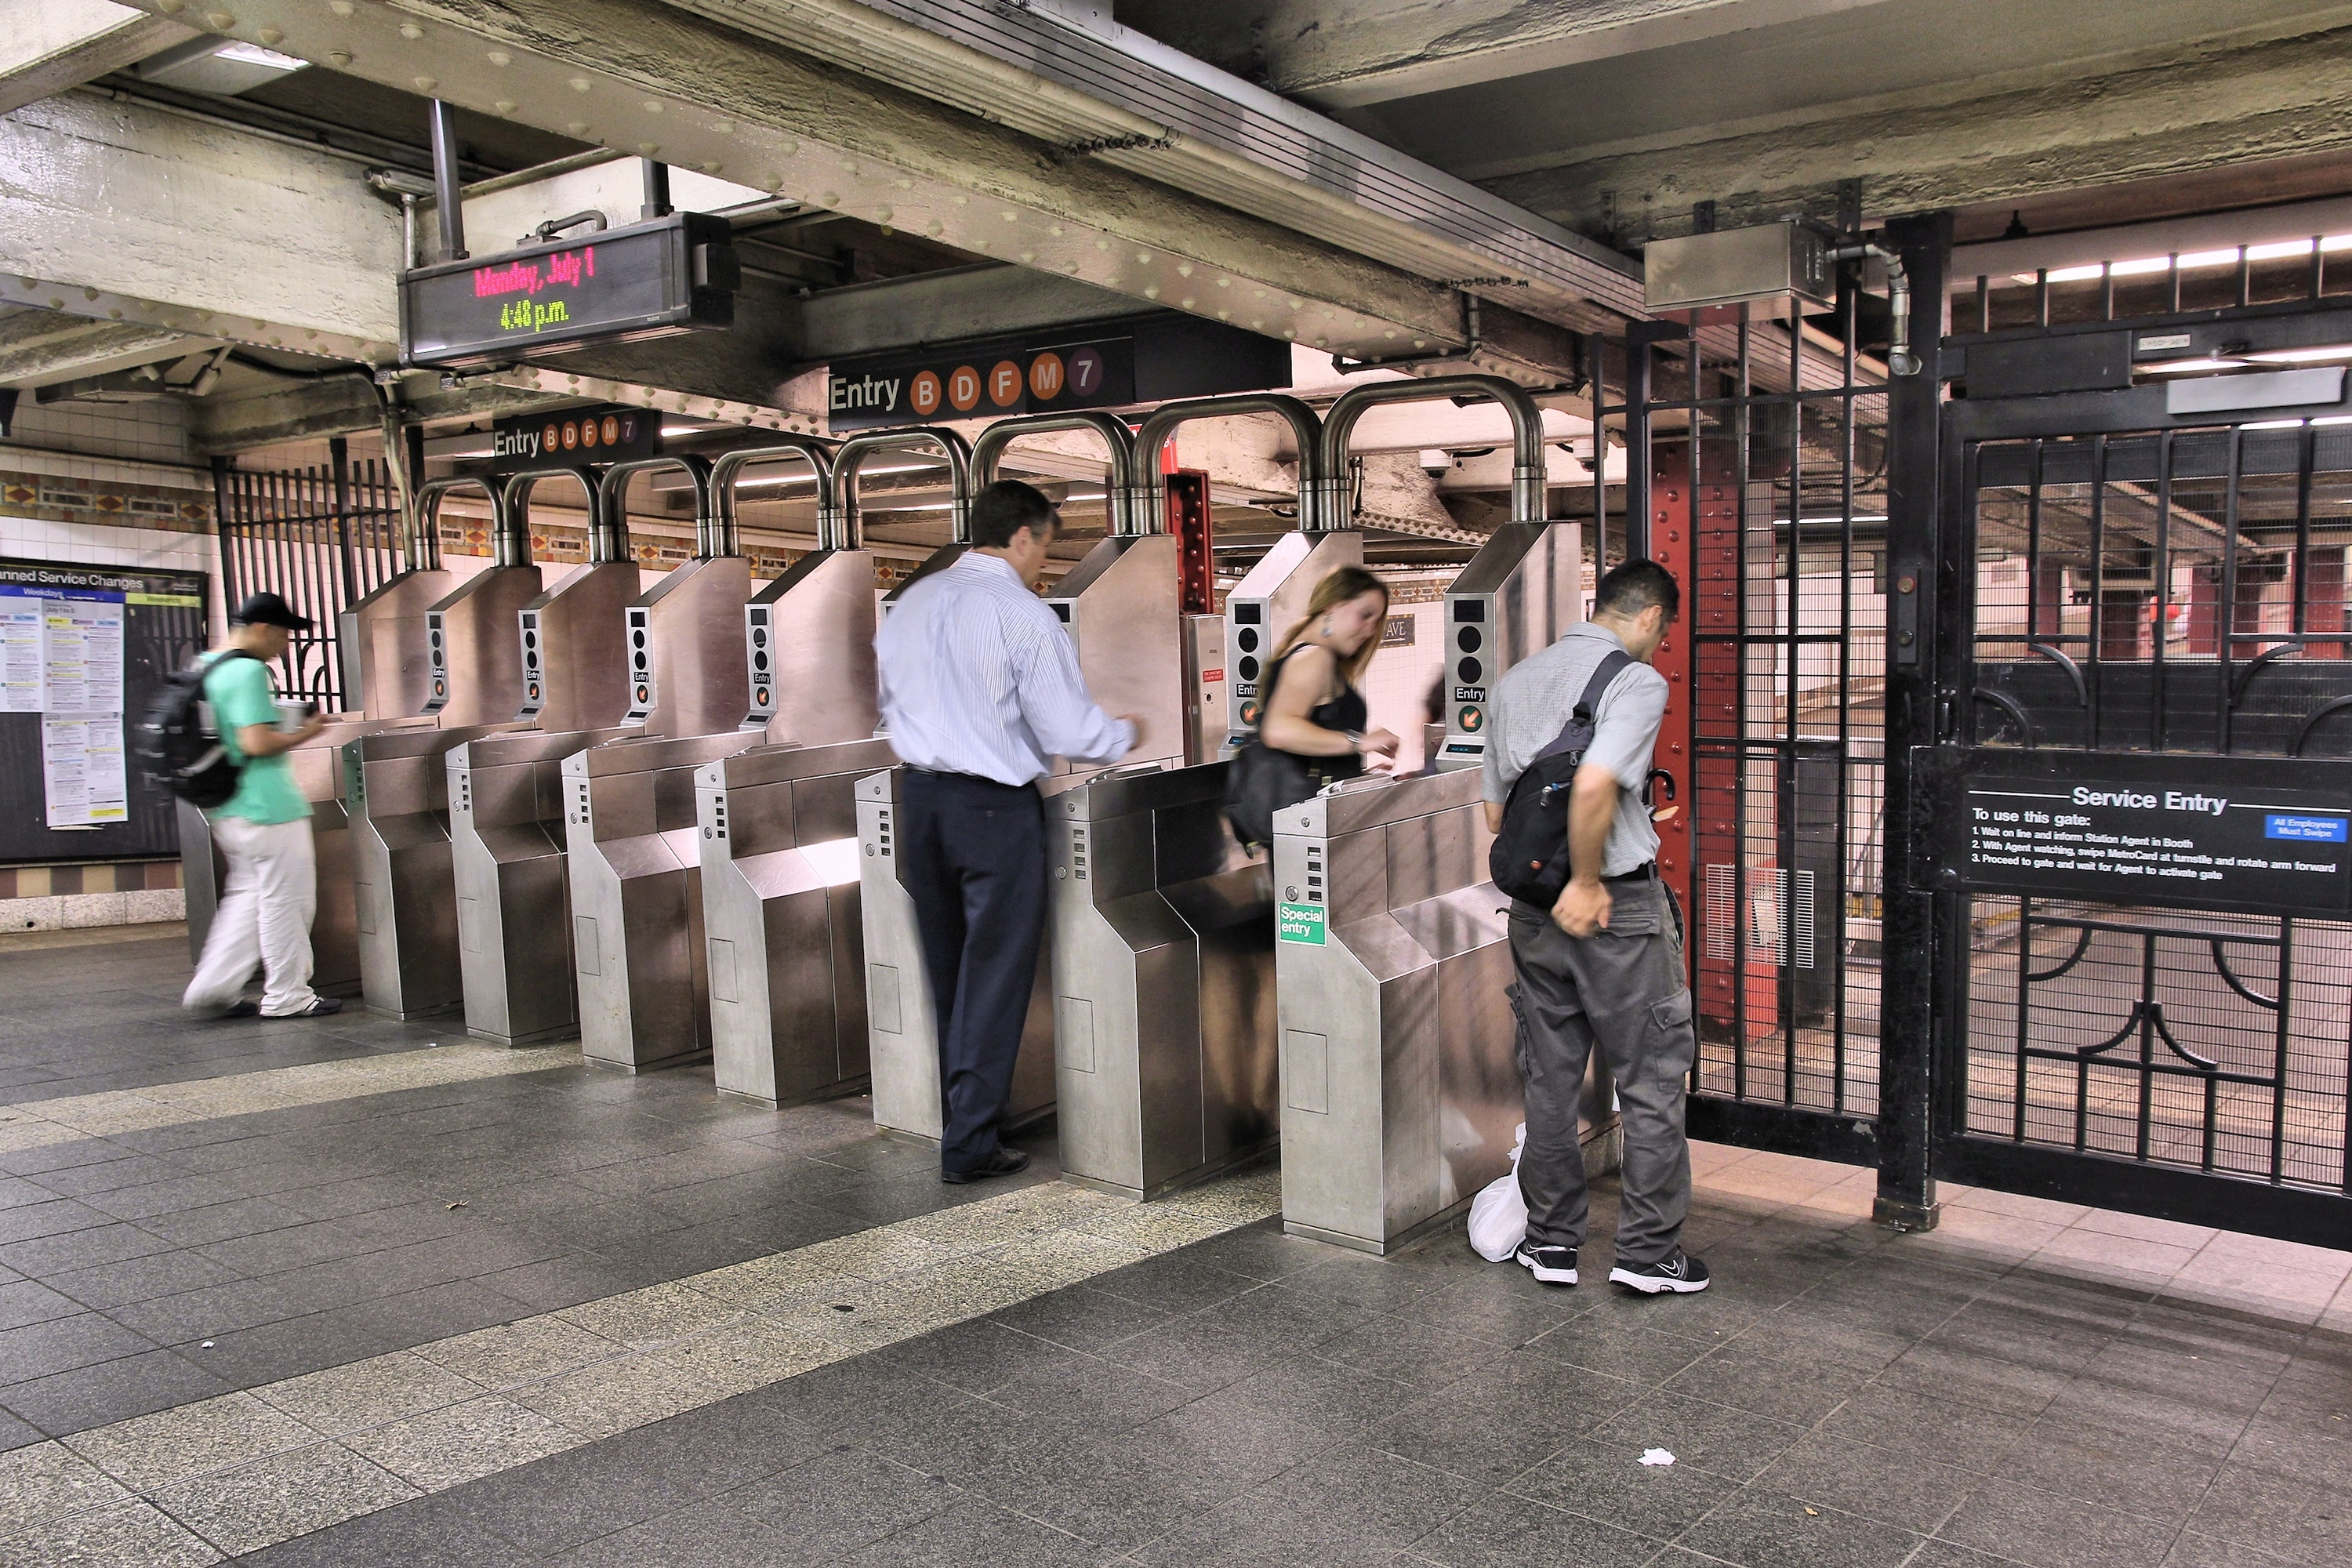 Subway fare is going up to $3